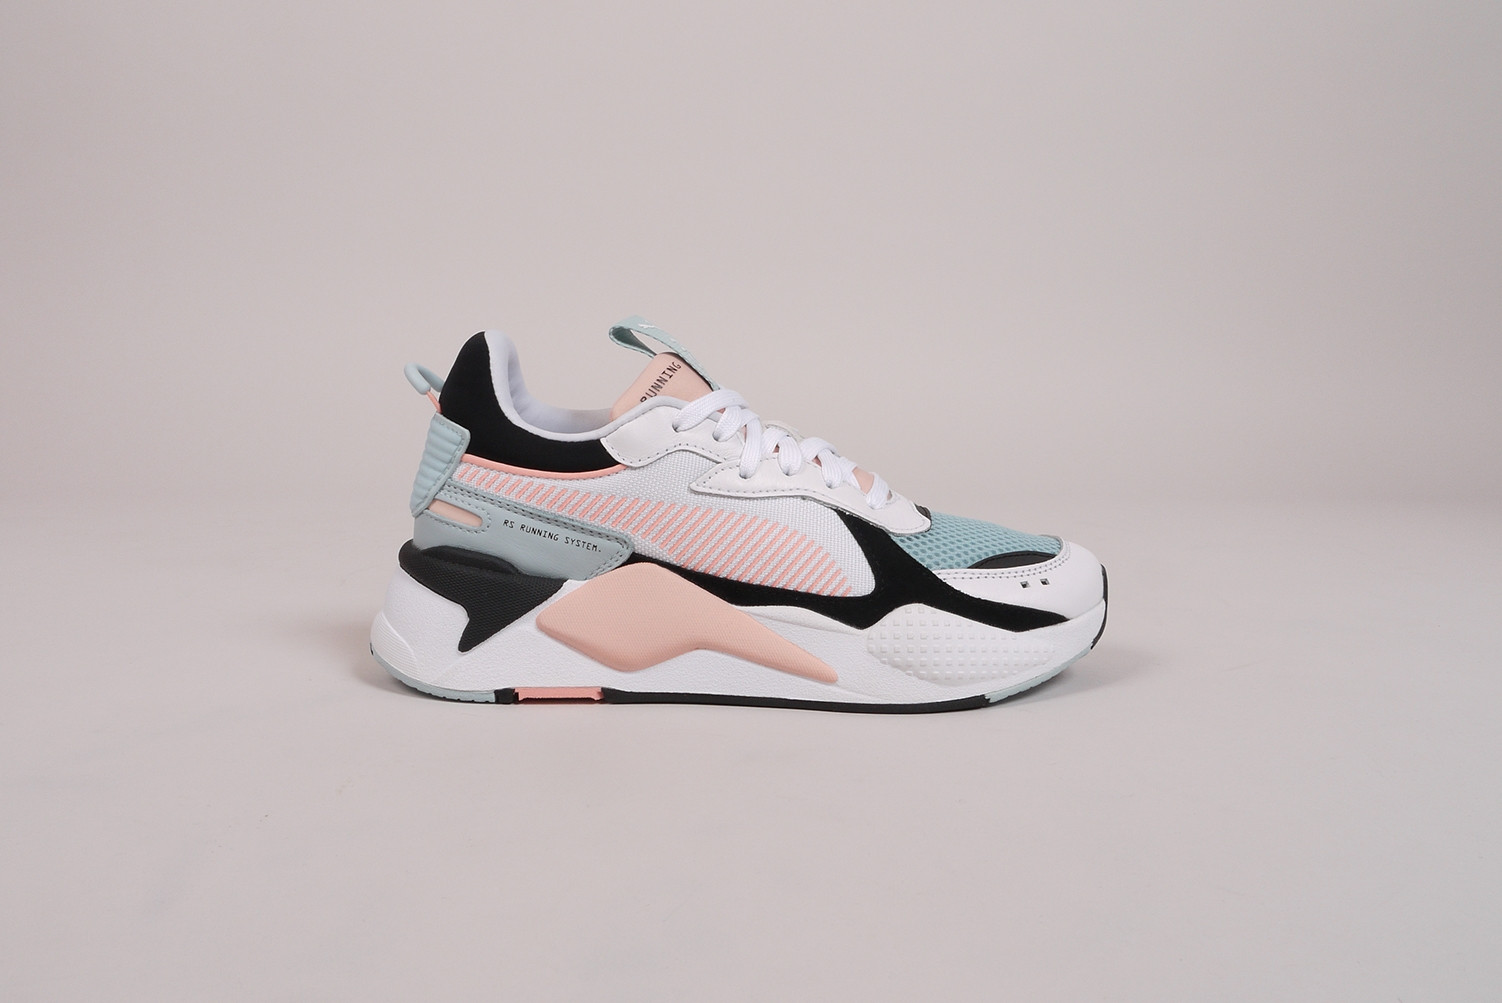 Puma RS-X Reinvention 369579-06 | Alleyoop Sneaker Store